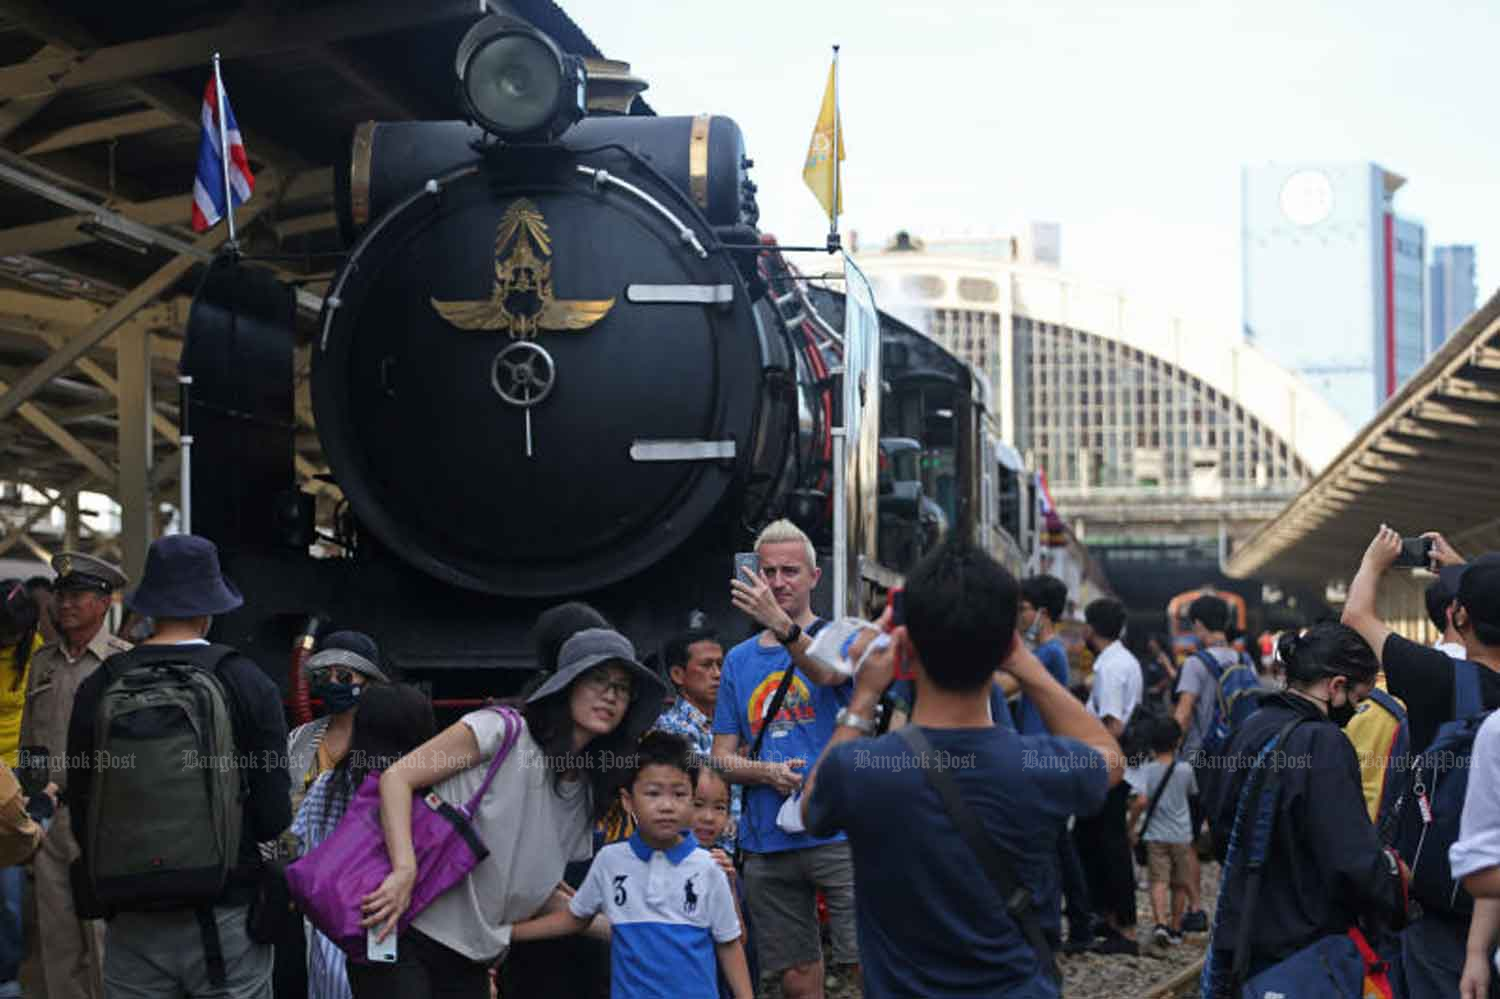 People take photos with an old steam engine the State Railway of Thailand operated from Hua Lamphong railway terminus in Bangkok to celebrate His Majesty the King's birthday on Tuesday, when the country logged two new Covid-19 cases. (Photo: Varuth Hirunyatheb)